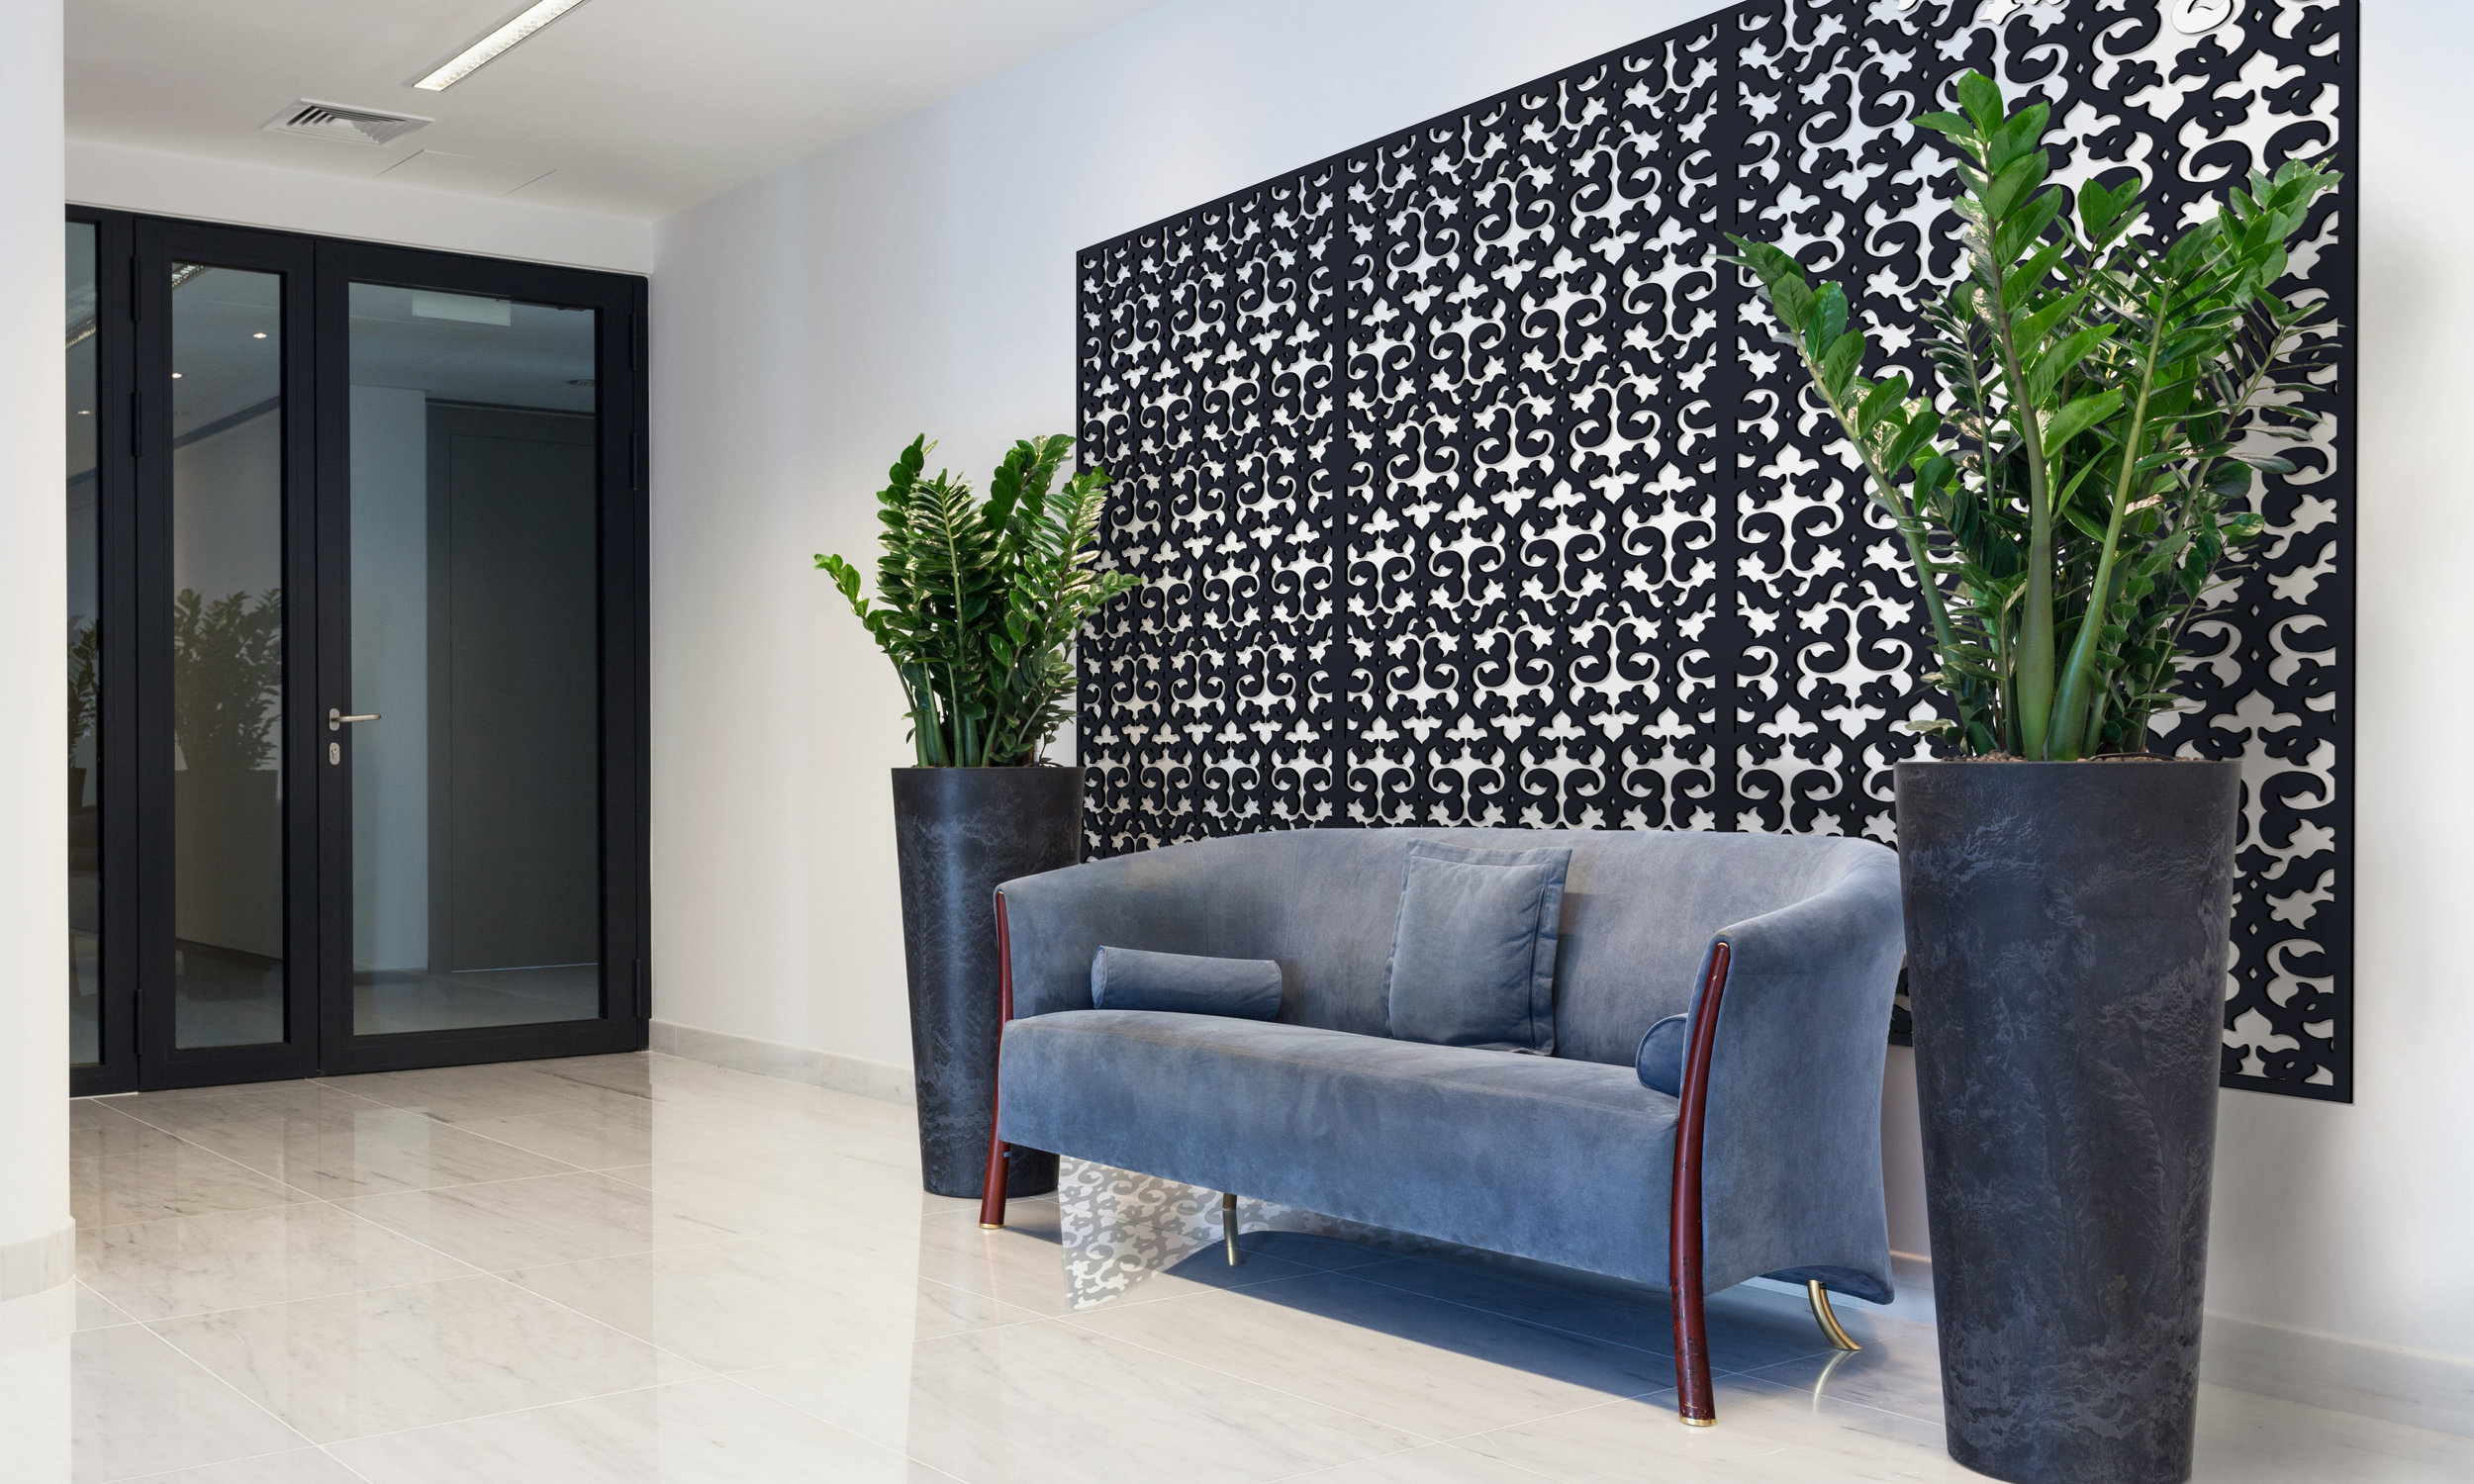 Installation Rendering B   Wallpaper decorative office wall panel - painted